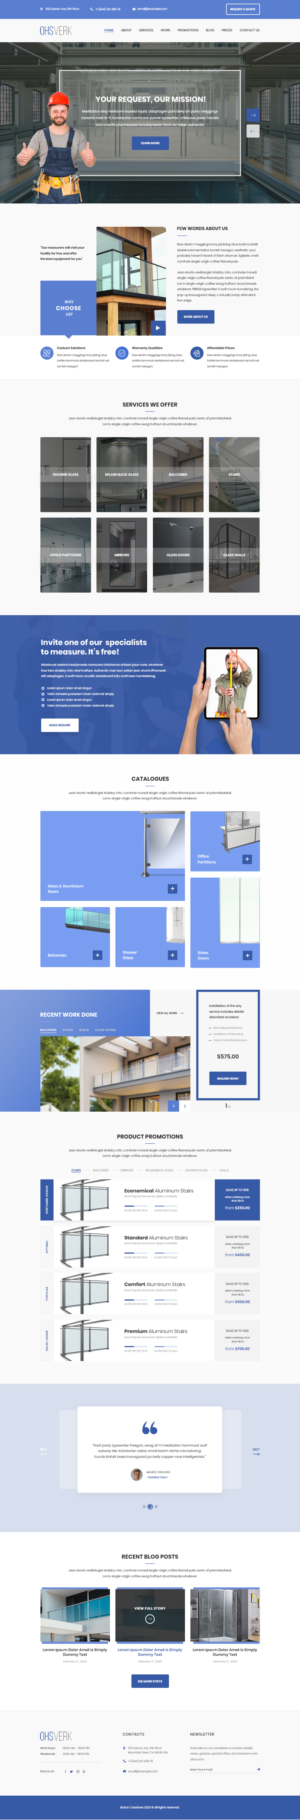 Web Design by ButtonCreative